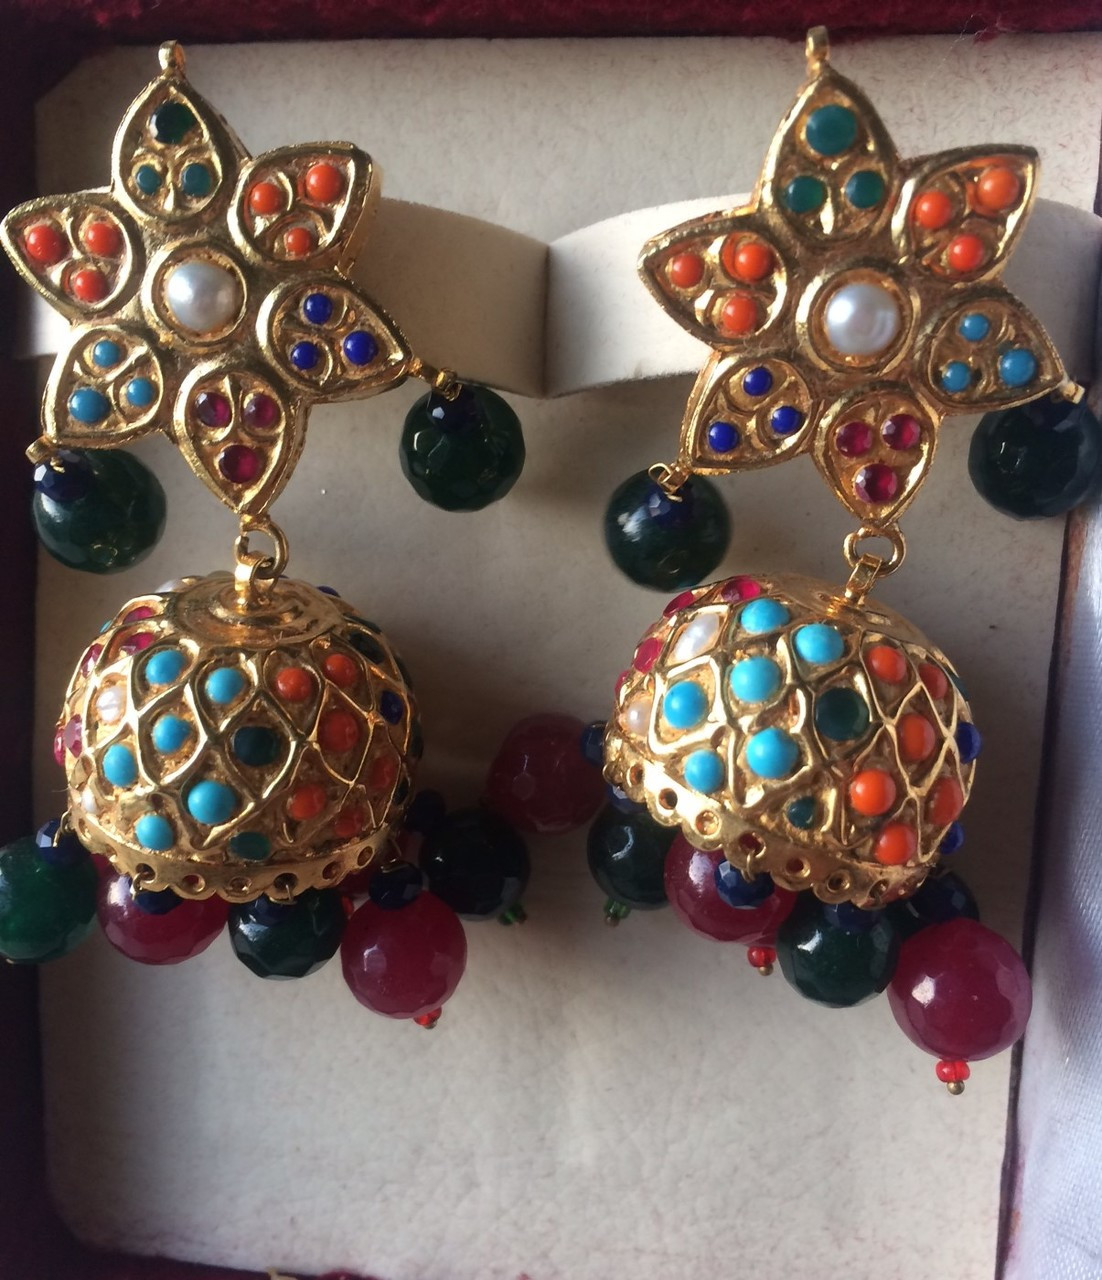 903a7d98a Artificial Fashion Jewelry Earrings with prices